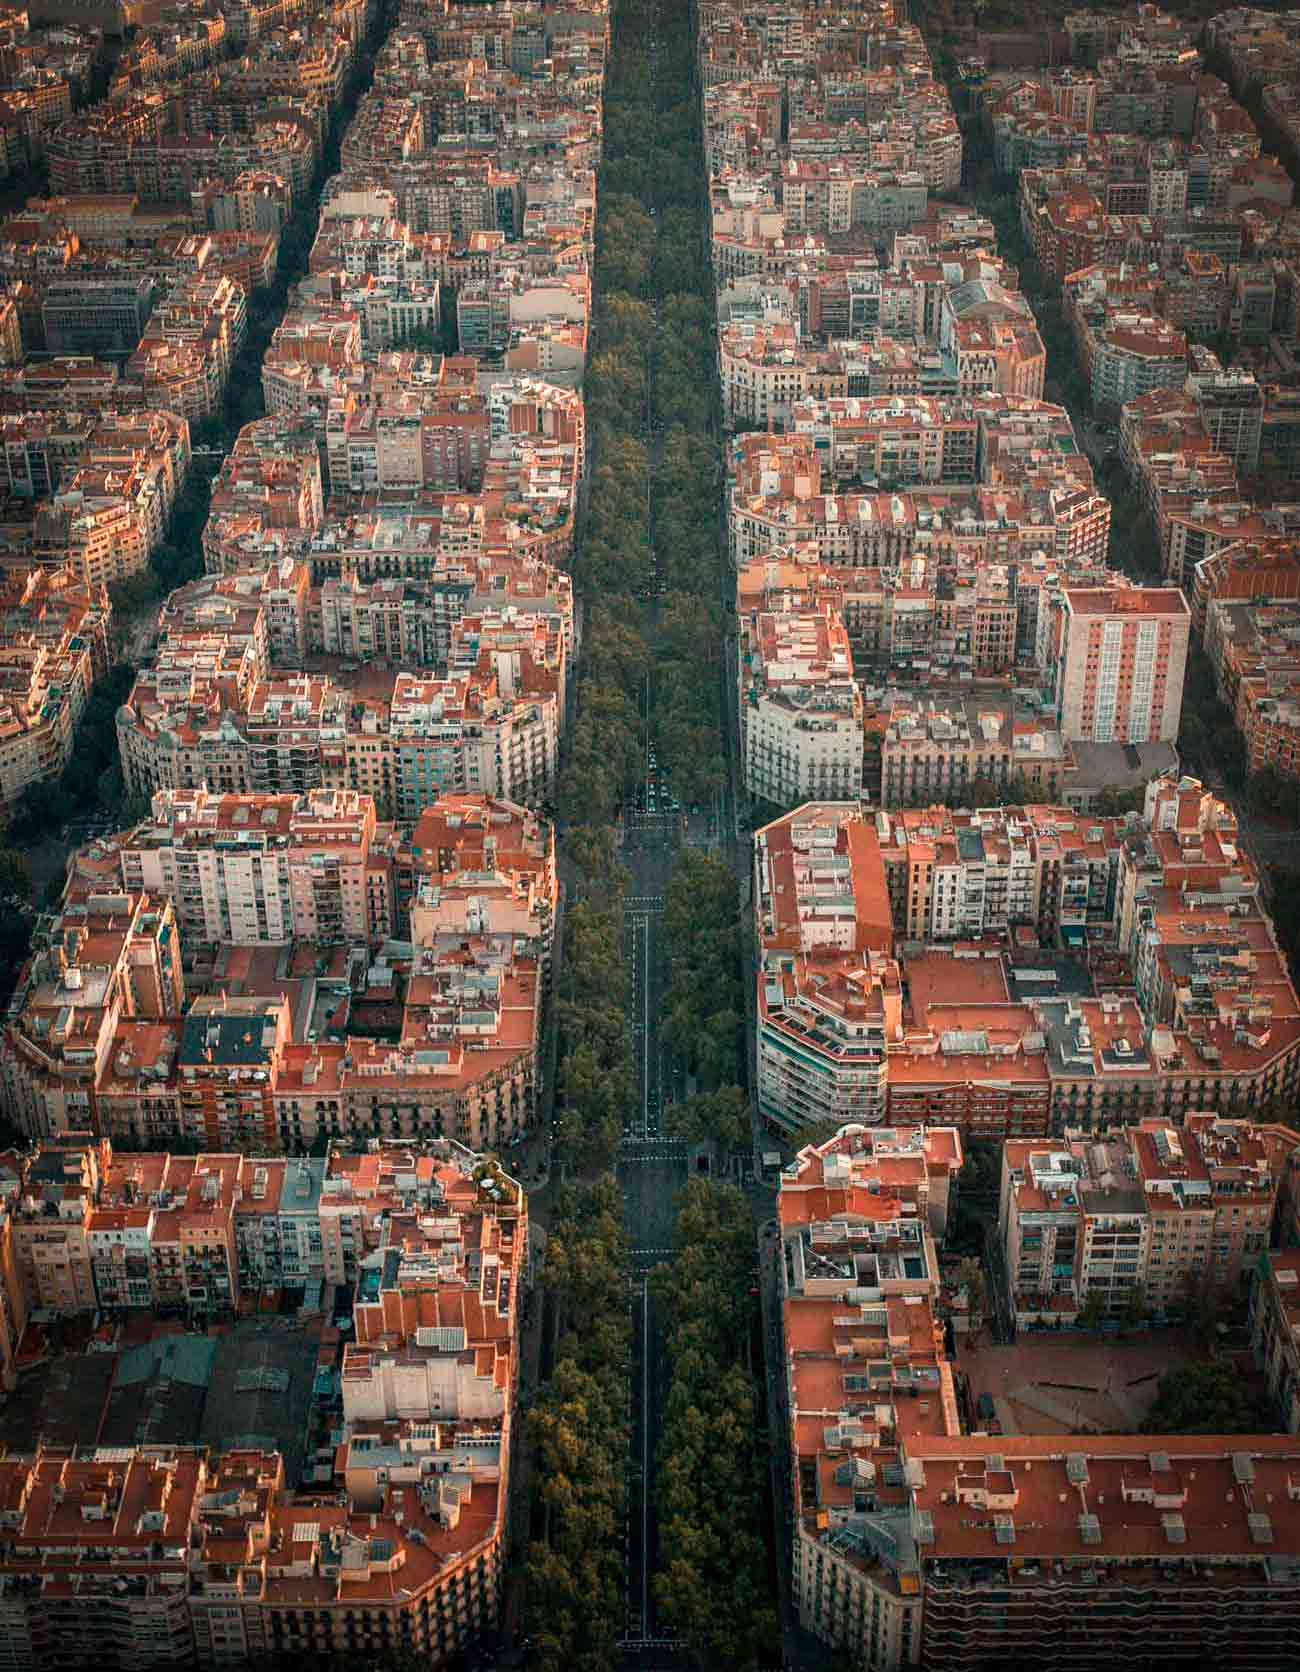 drone photo of barcelona